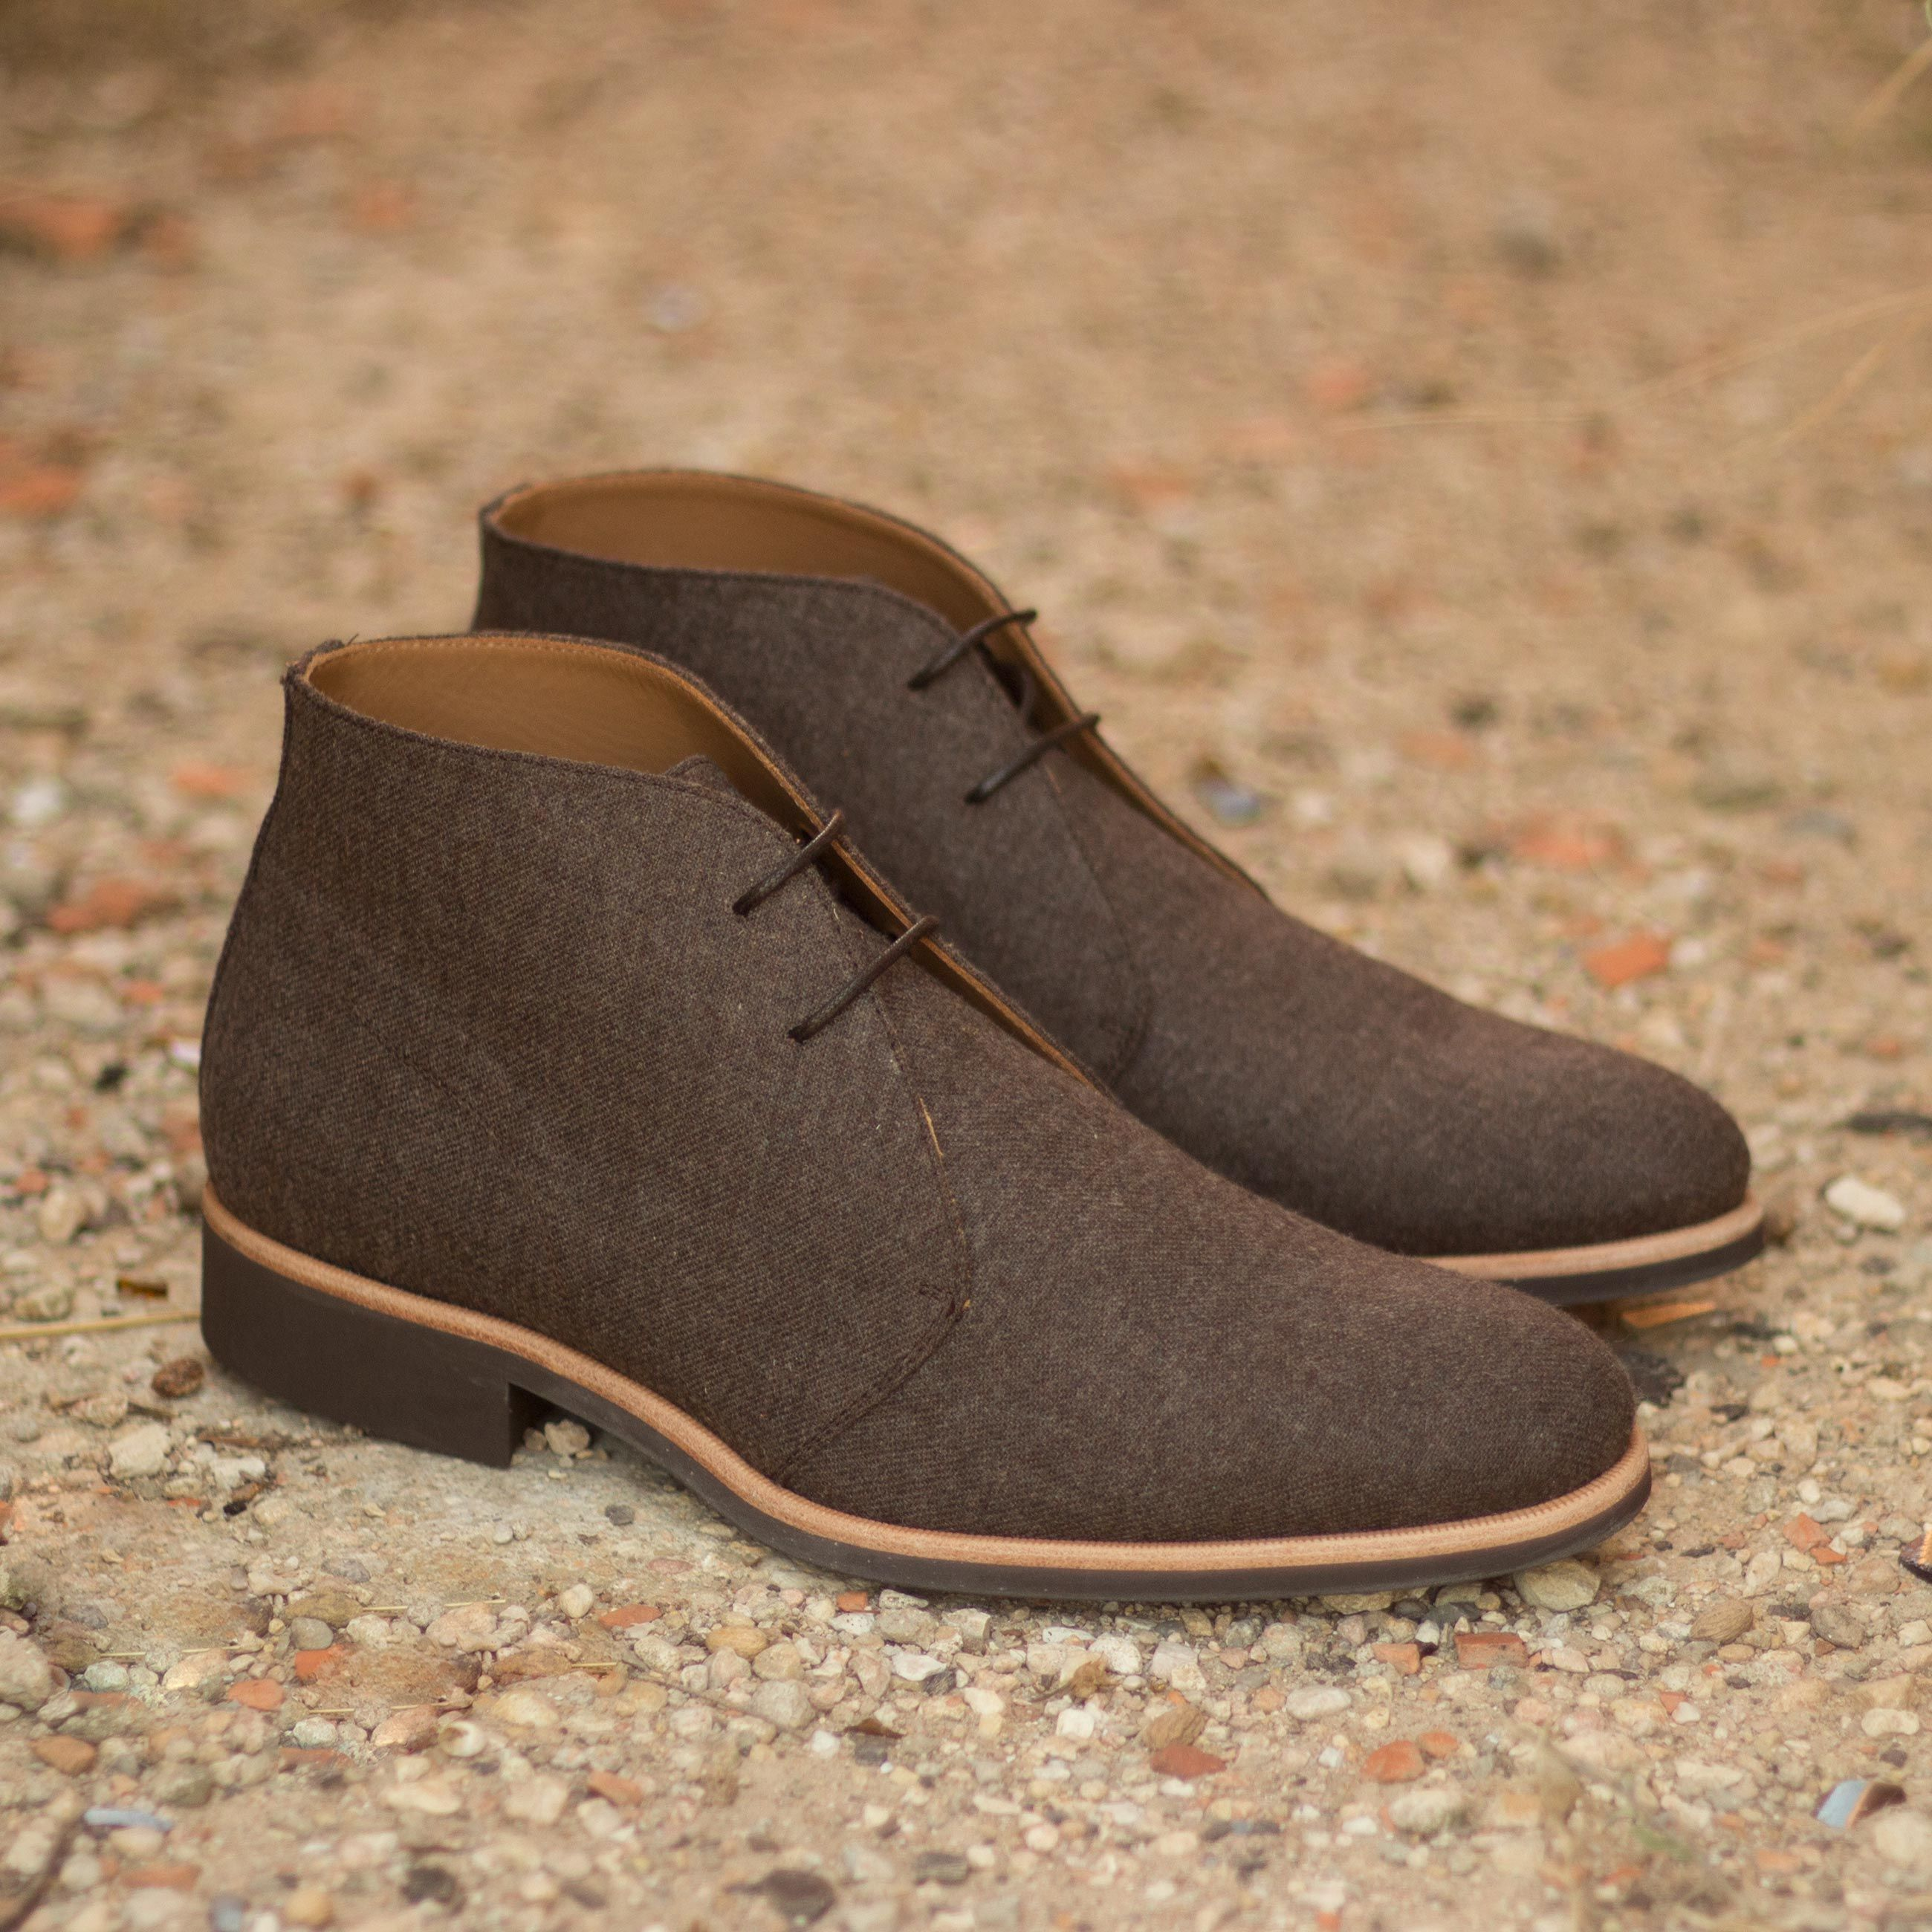 Custom Made Chukka Boot in Brown Flannel  Robert August Apparel is part of Chukka boots - Handcrafted Custom Made Chukka Boots in Brown Flannel From Robert August  Create your own custom designed chukka boots shoes shoesoftheday dapper menswear mensfashion luxurylifestyle success hot style bespoke luxury